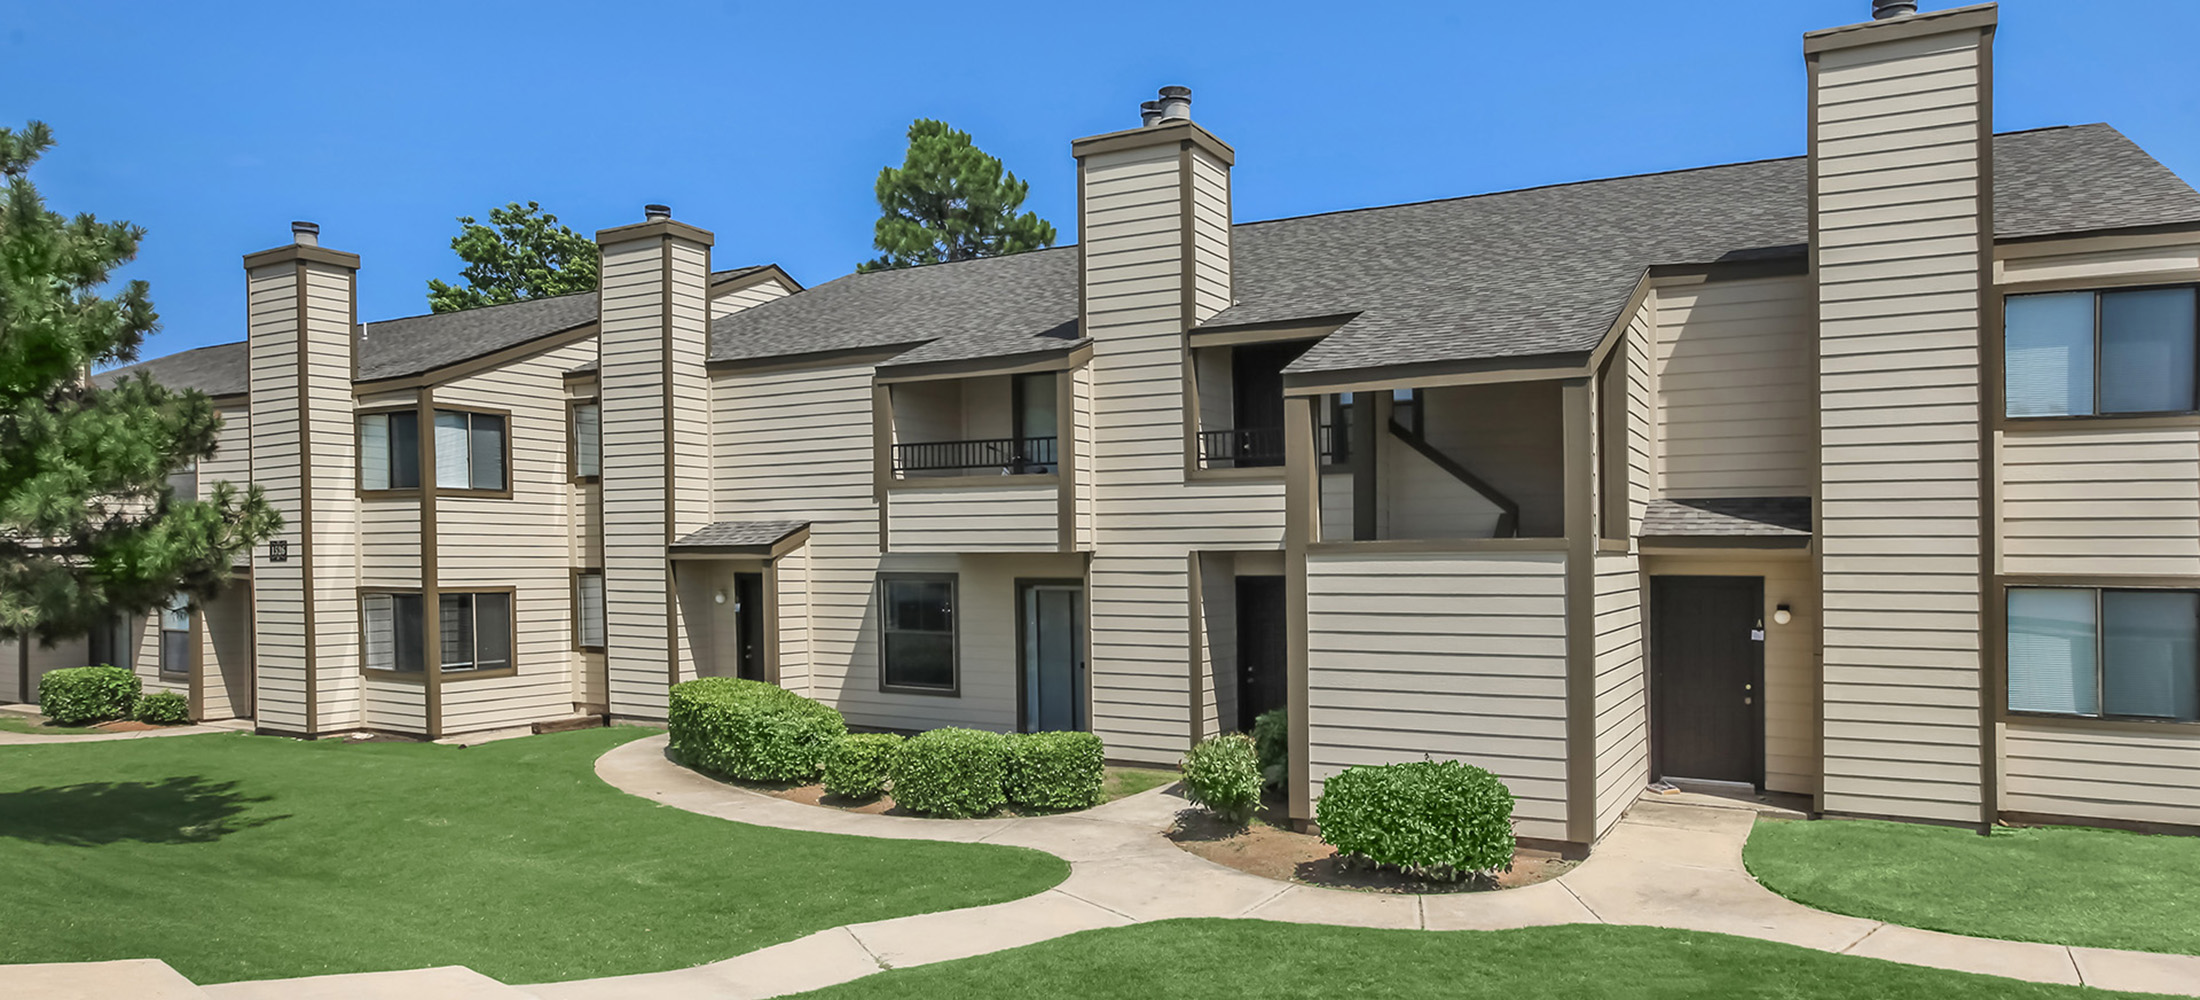 One bedroom apartments in norman ok one bedroom apartments One bedroom apartments in oklahoma city